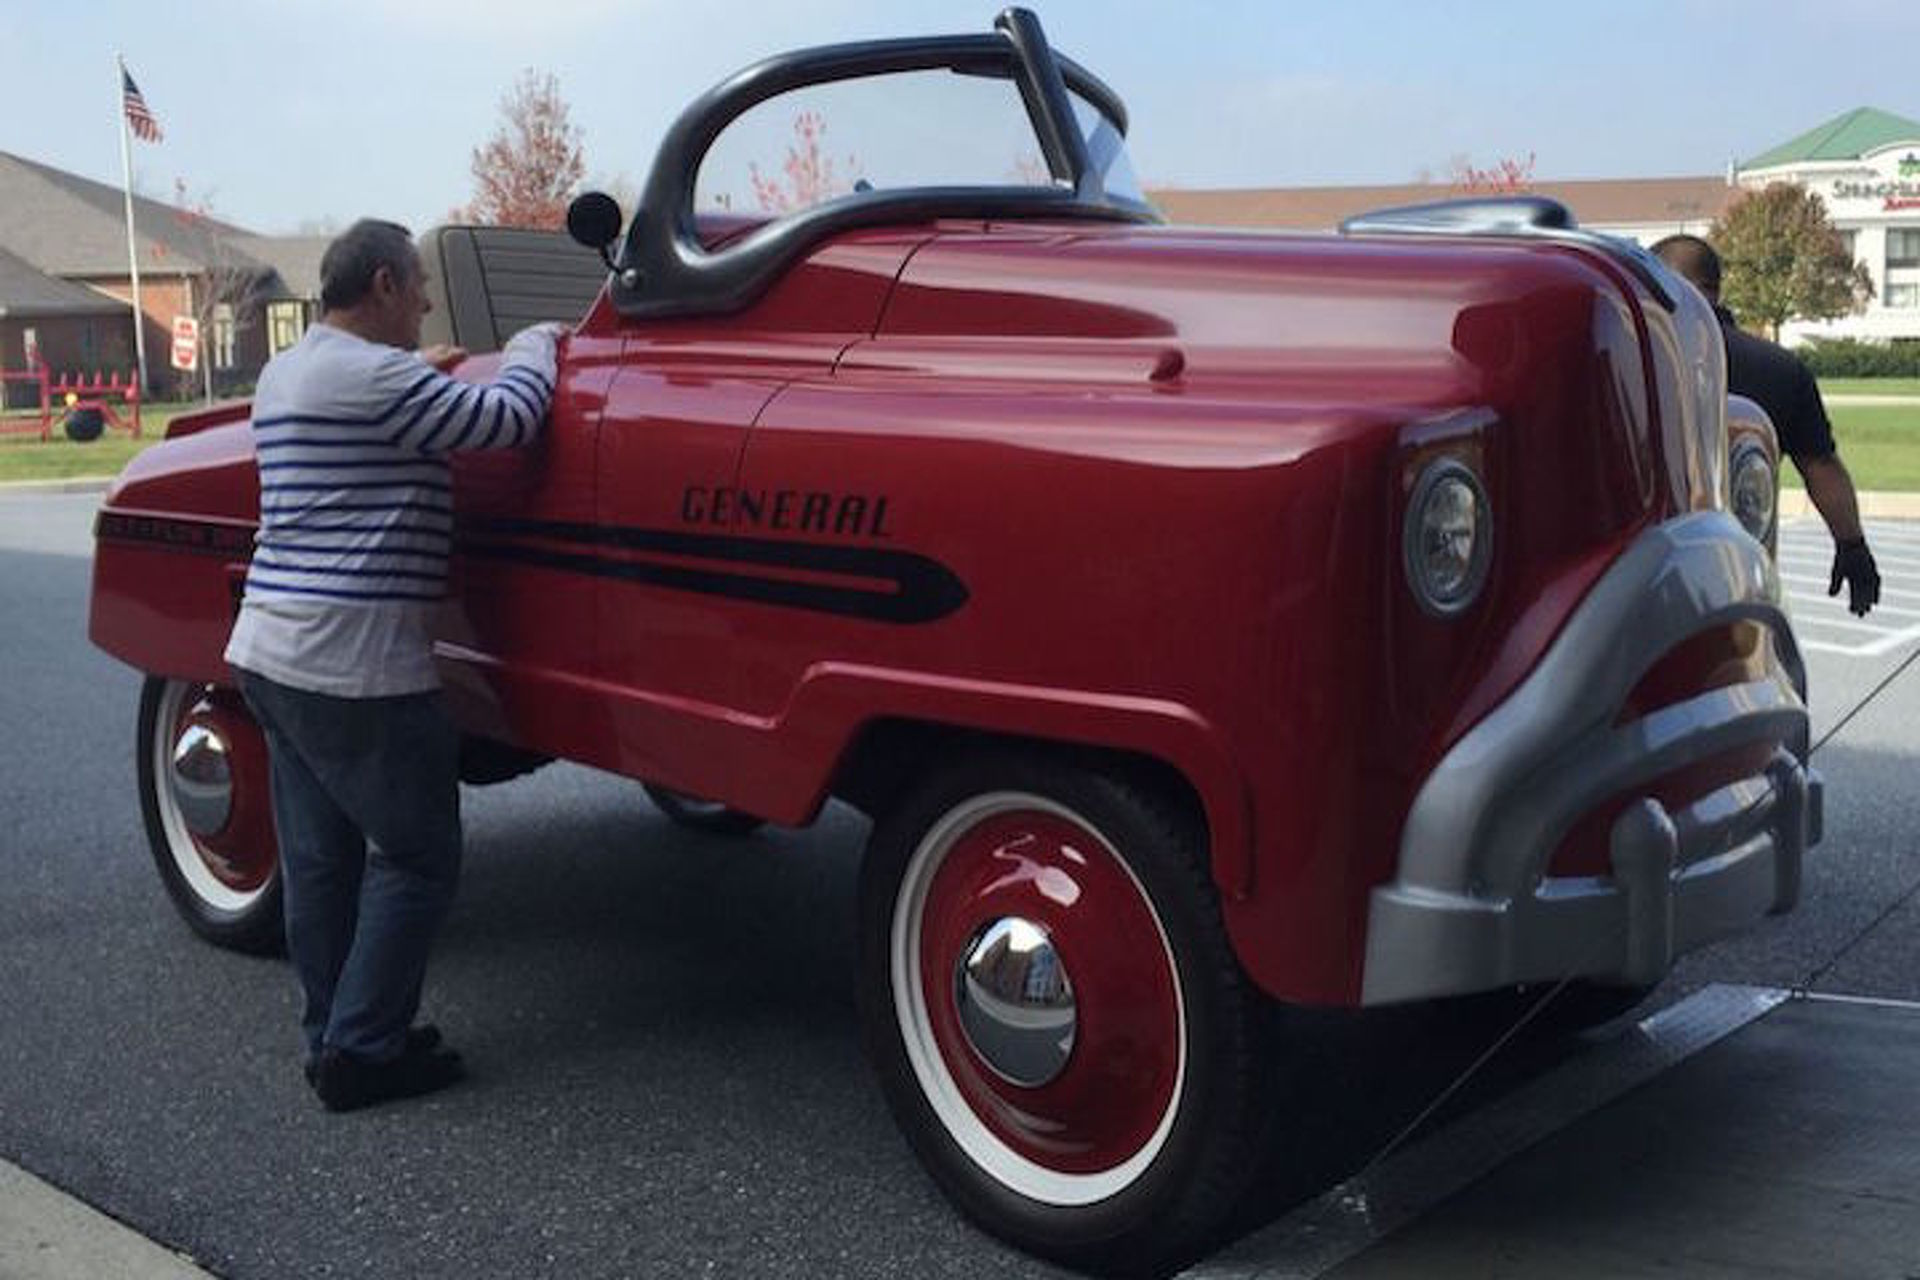 This Oversized, Street-Legal Pedal Car is Every Man-Child\'s Dream